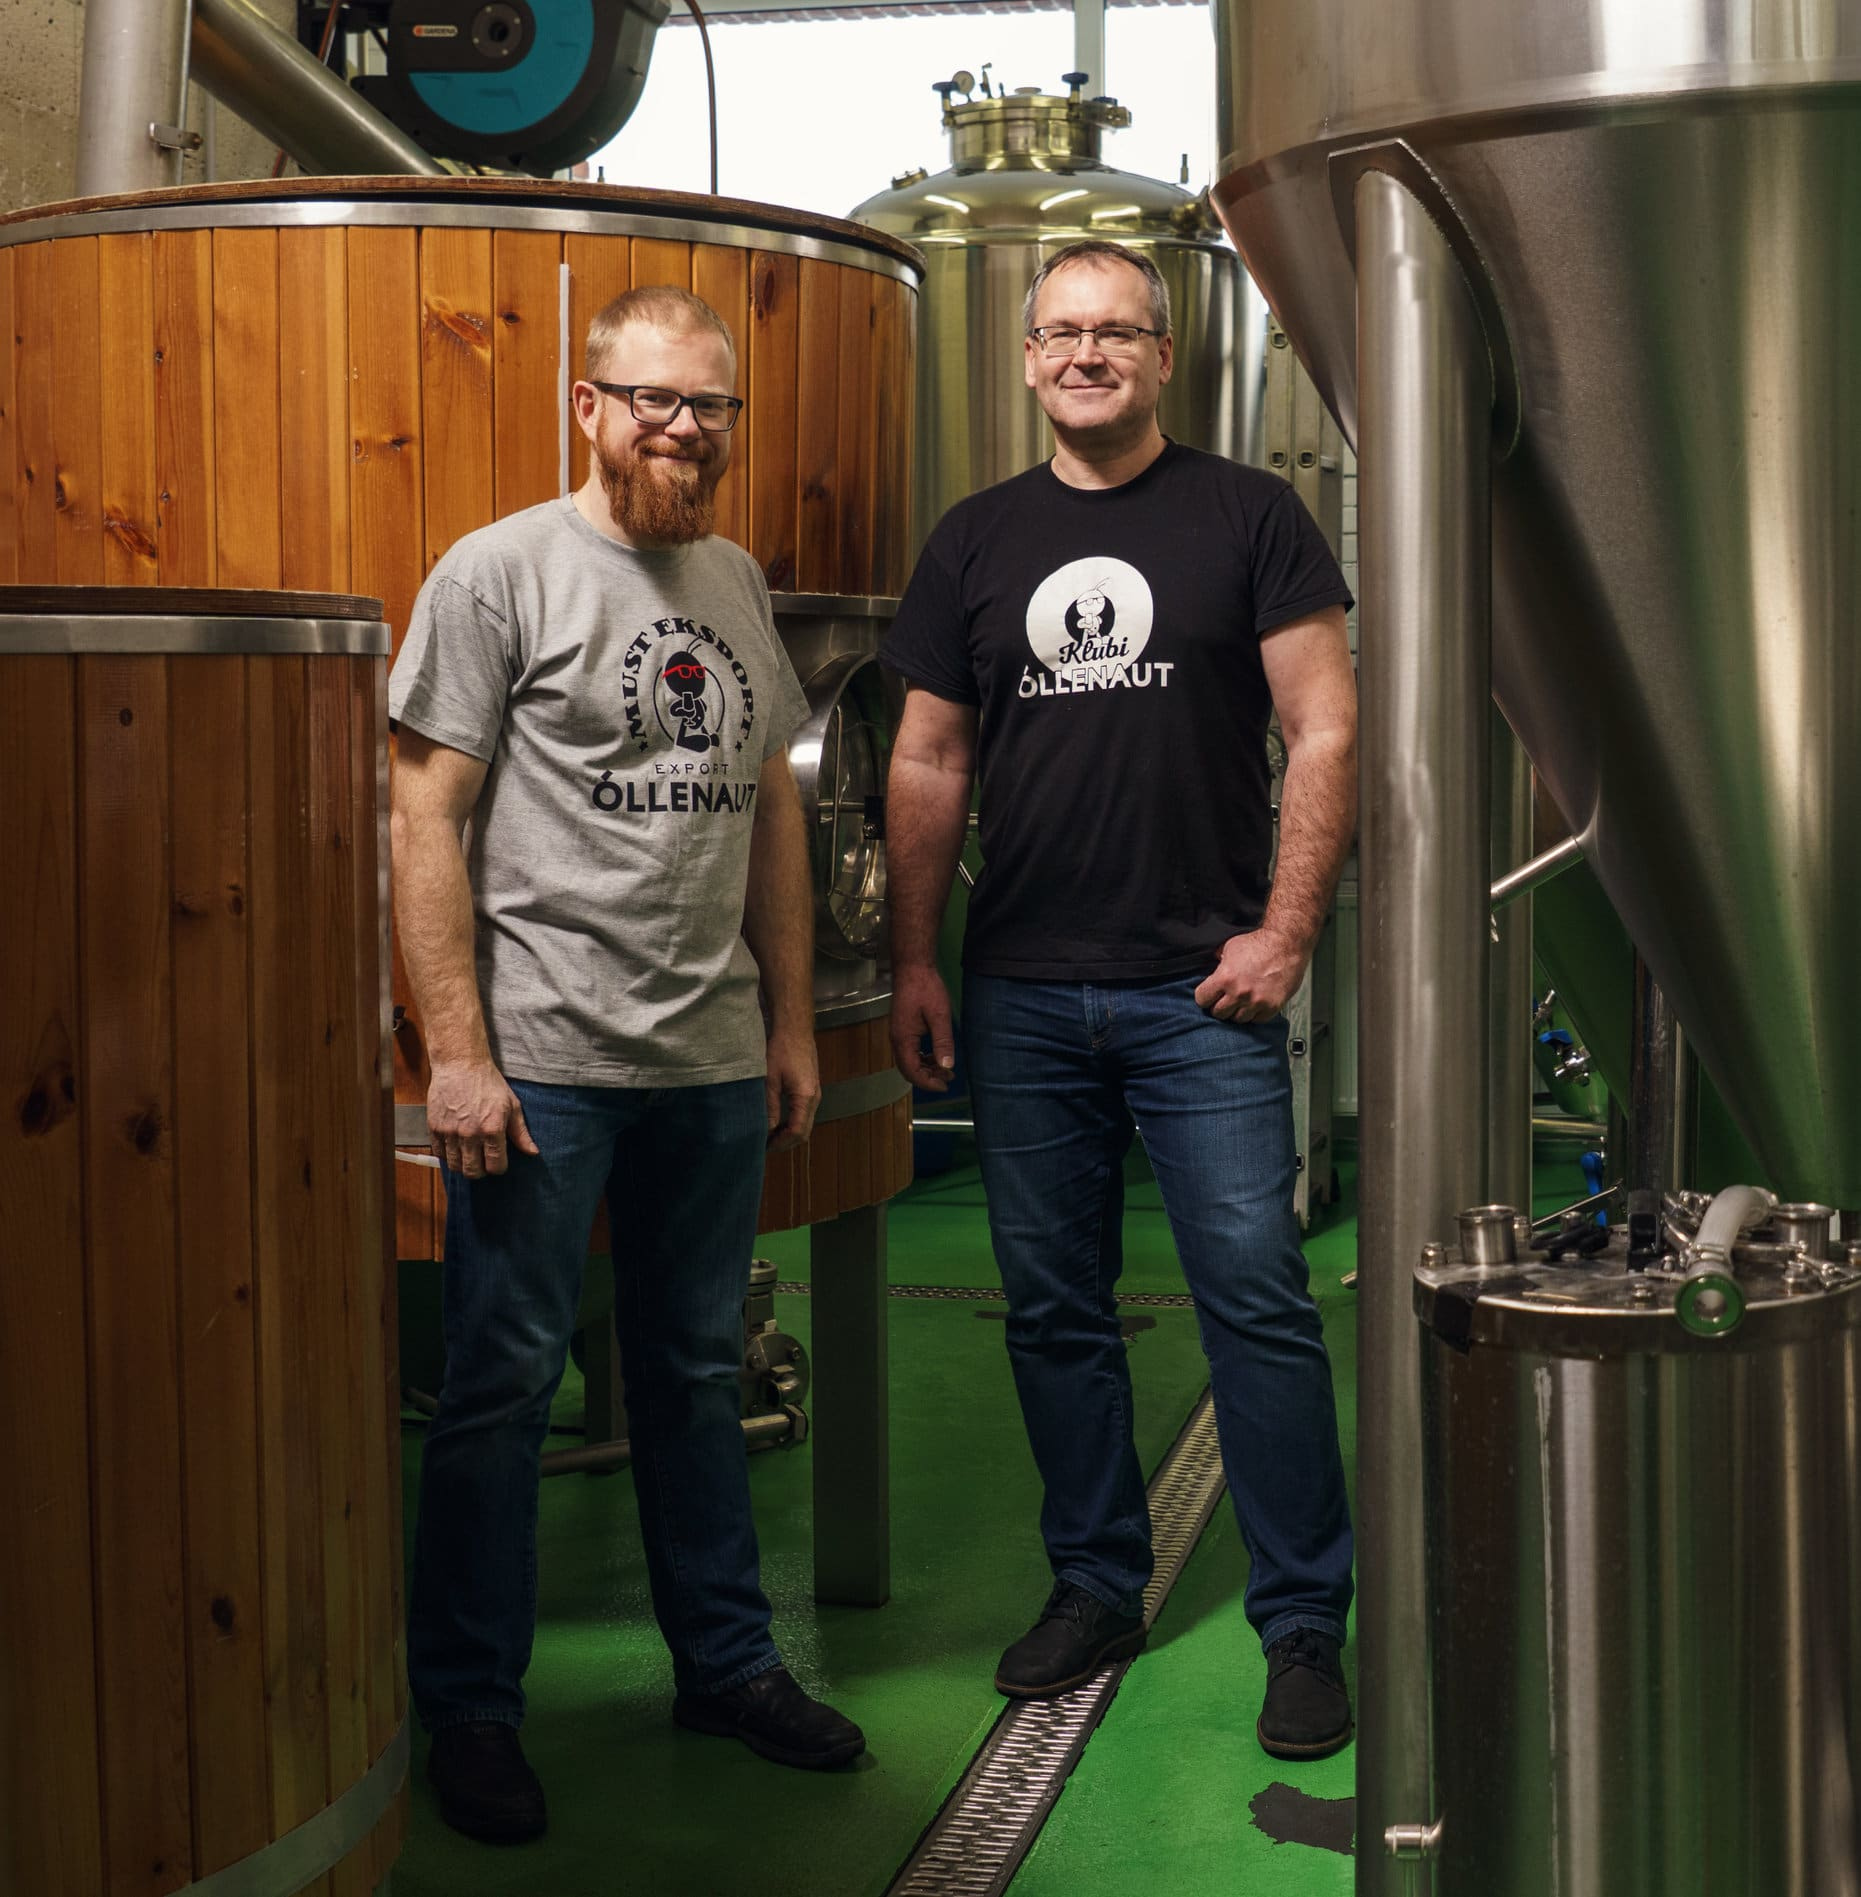 Urmas Roots and Ilmar Räni in the Õllenaut brewhouse